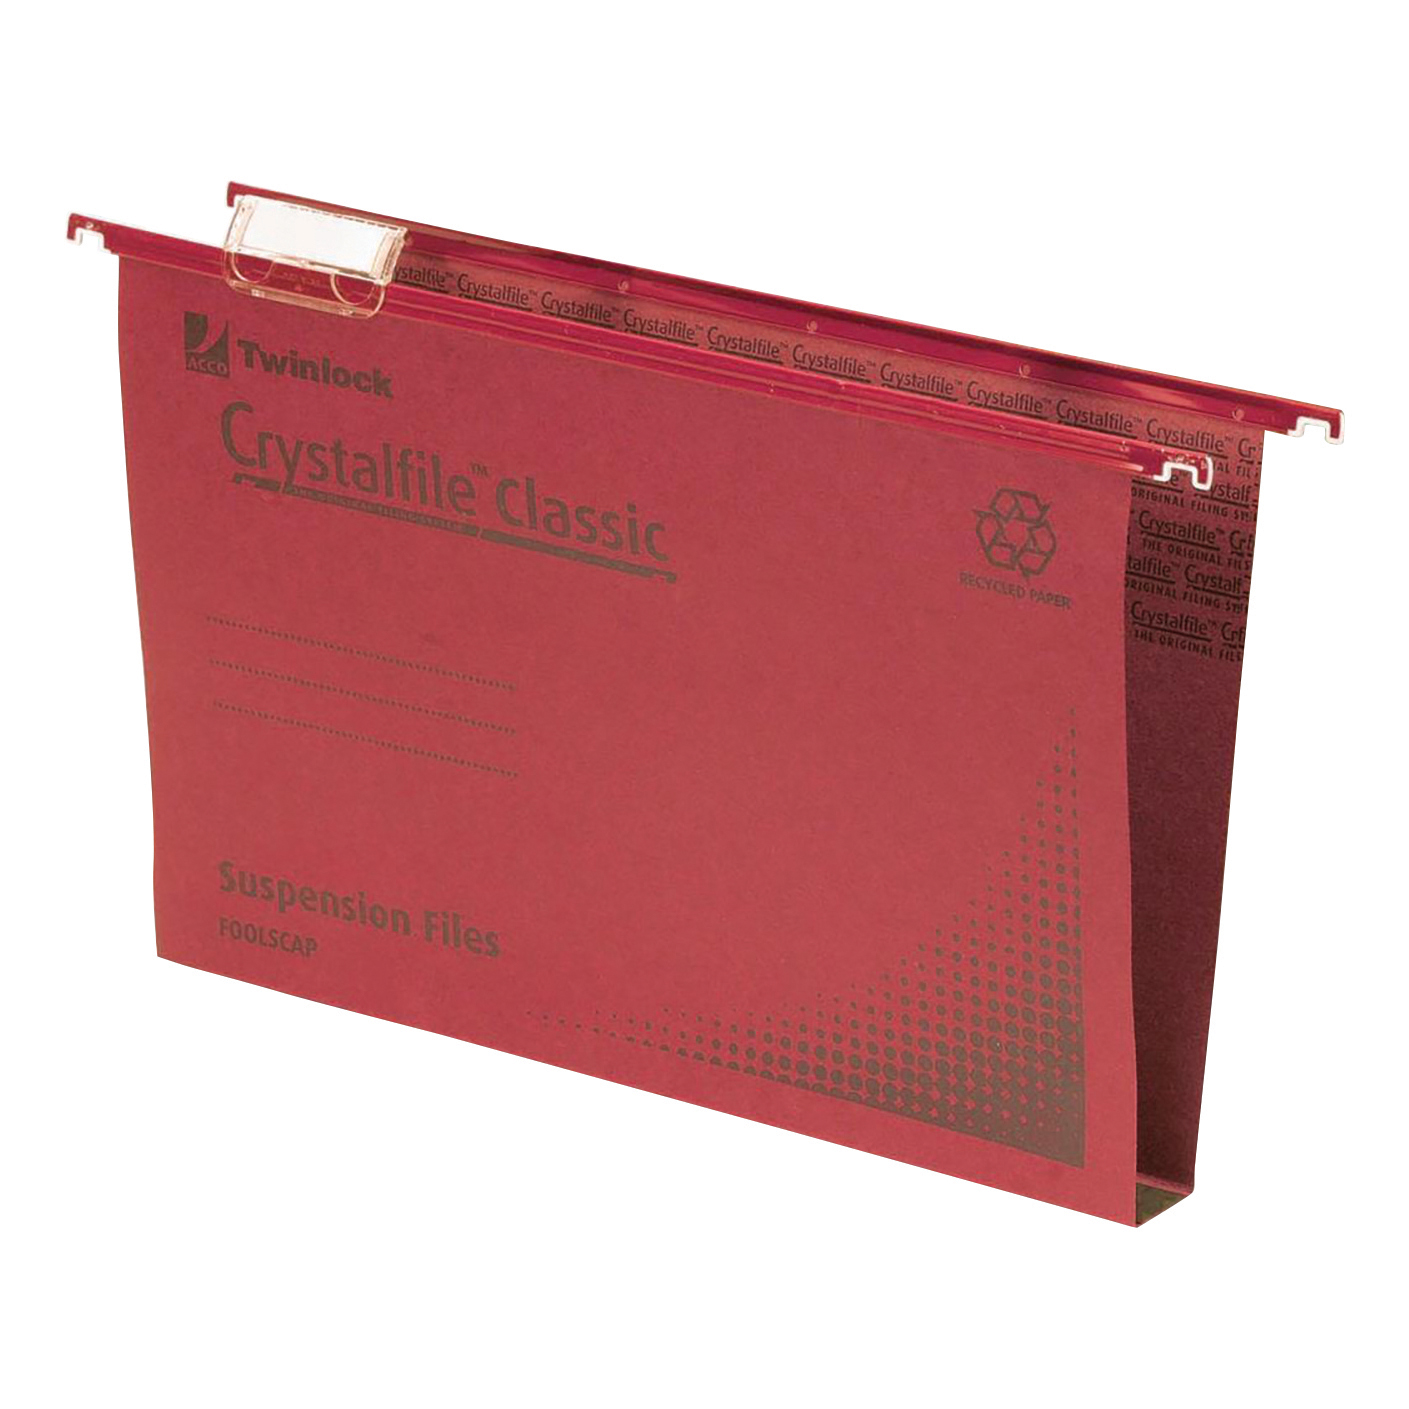 Suspension File Rexel Crystalfile Classic Suspension File Manilla 30mm Wide-base 230gsm Foolscap Red Ref 70622 Pack 50